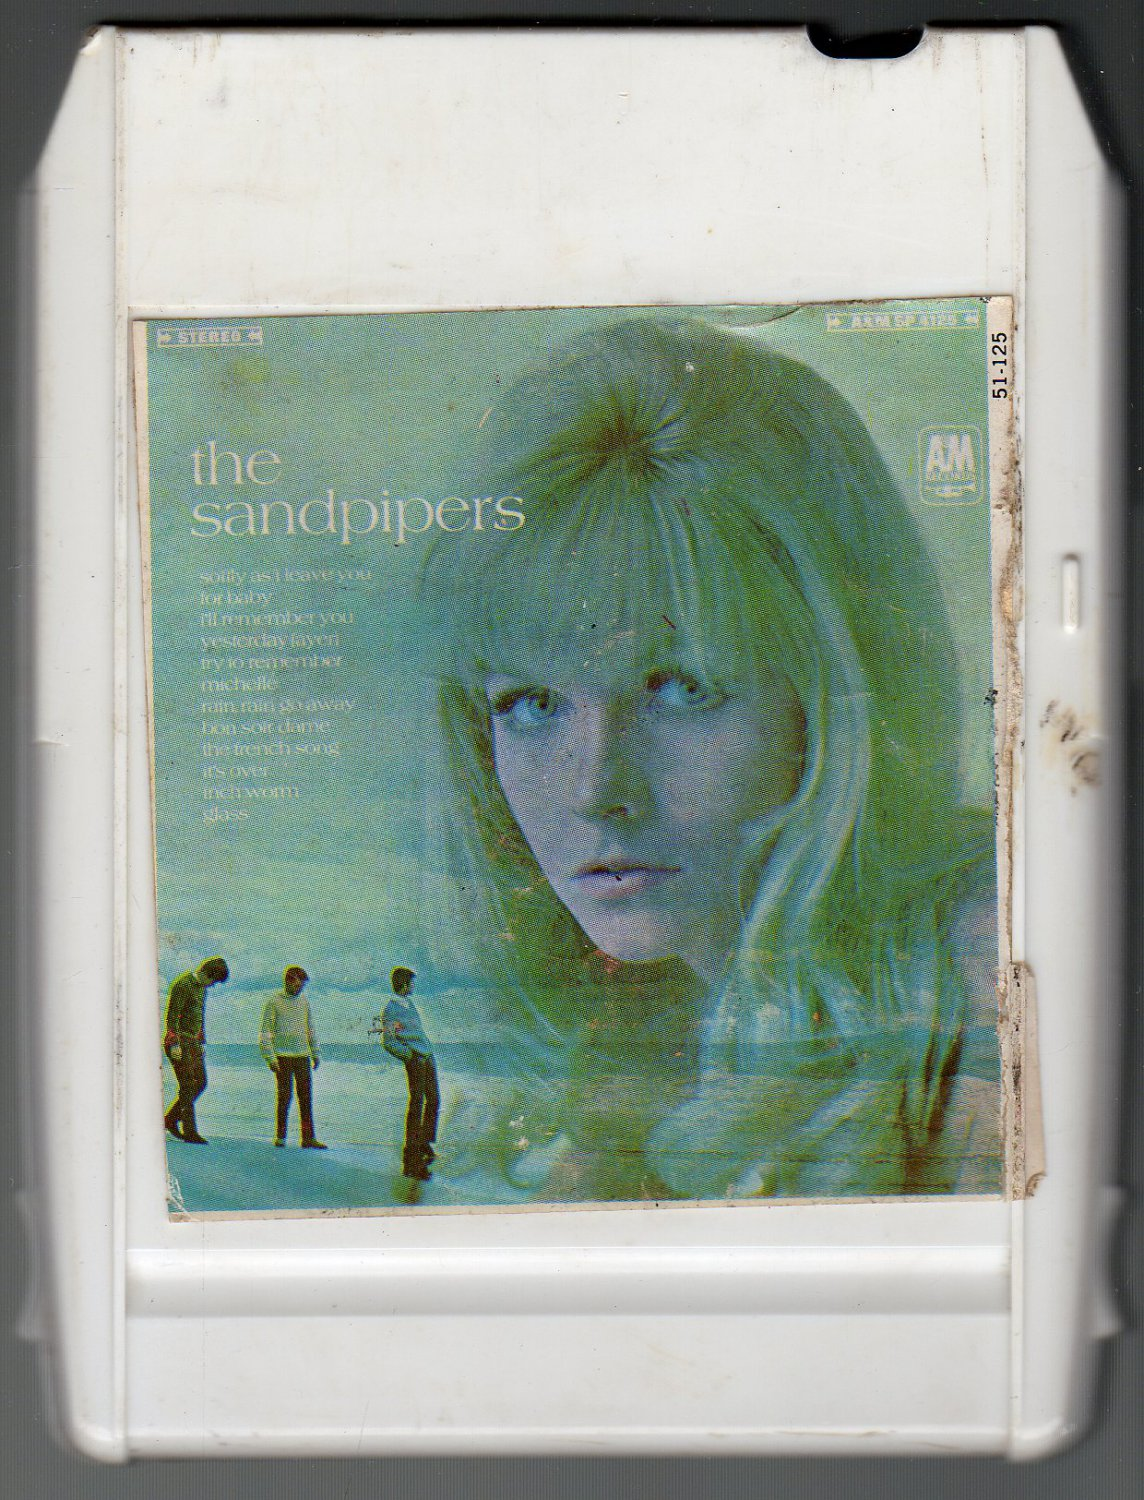 The Sandpipers - The Sandpipers 1967 A&M ITCC A50 8-track tape